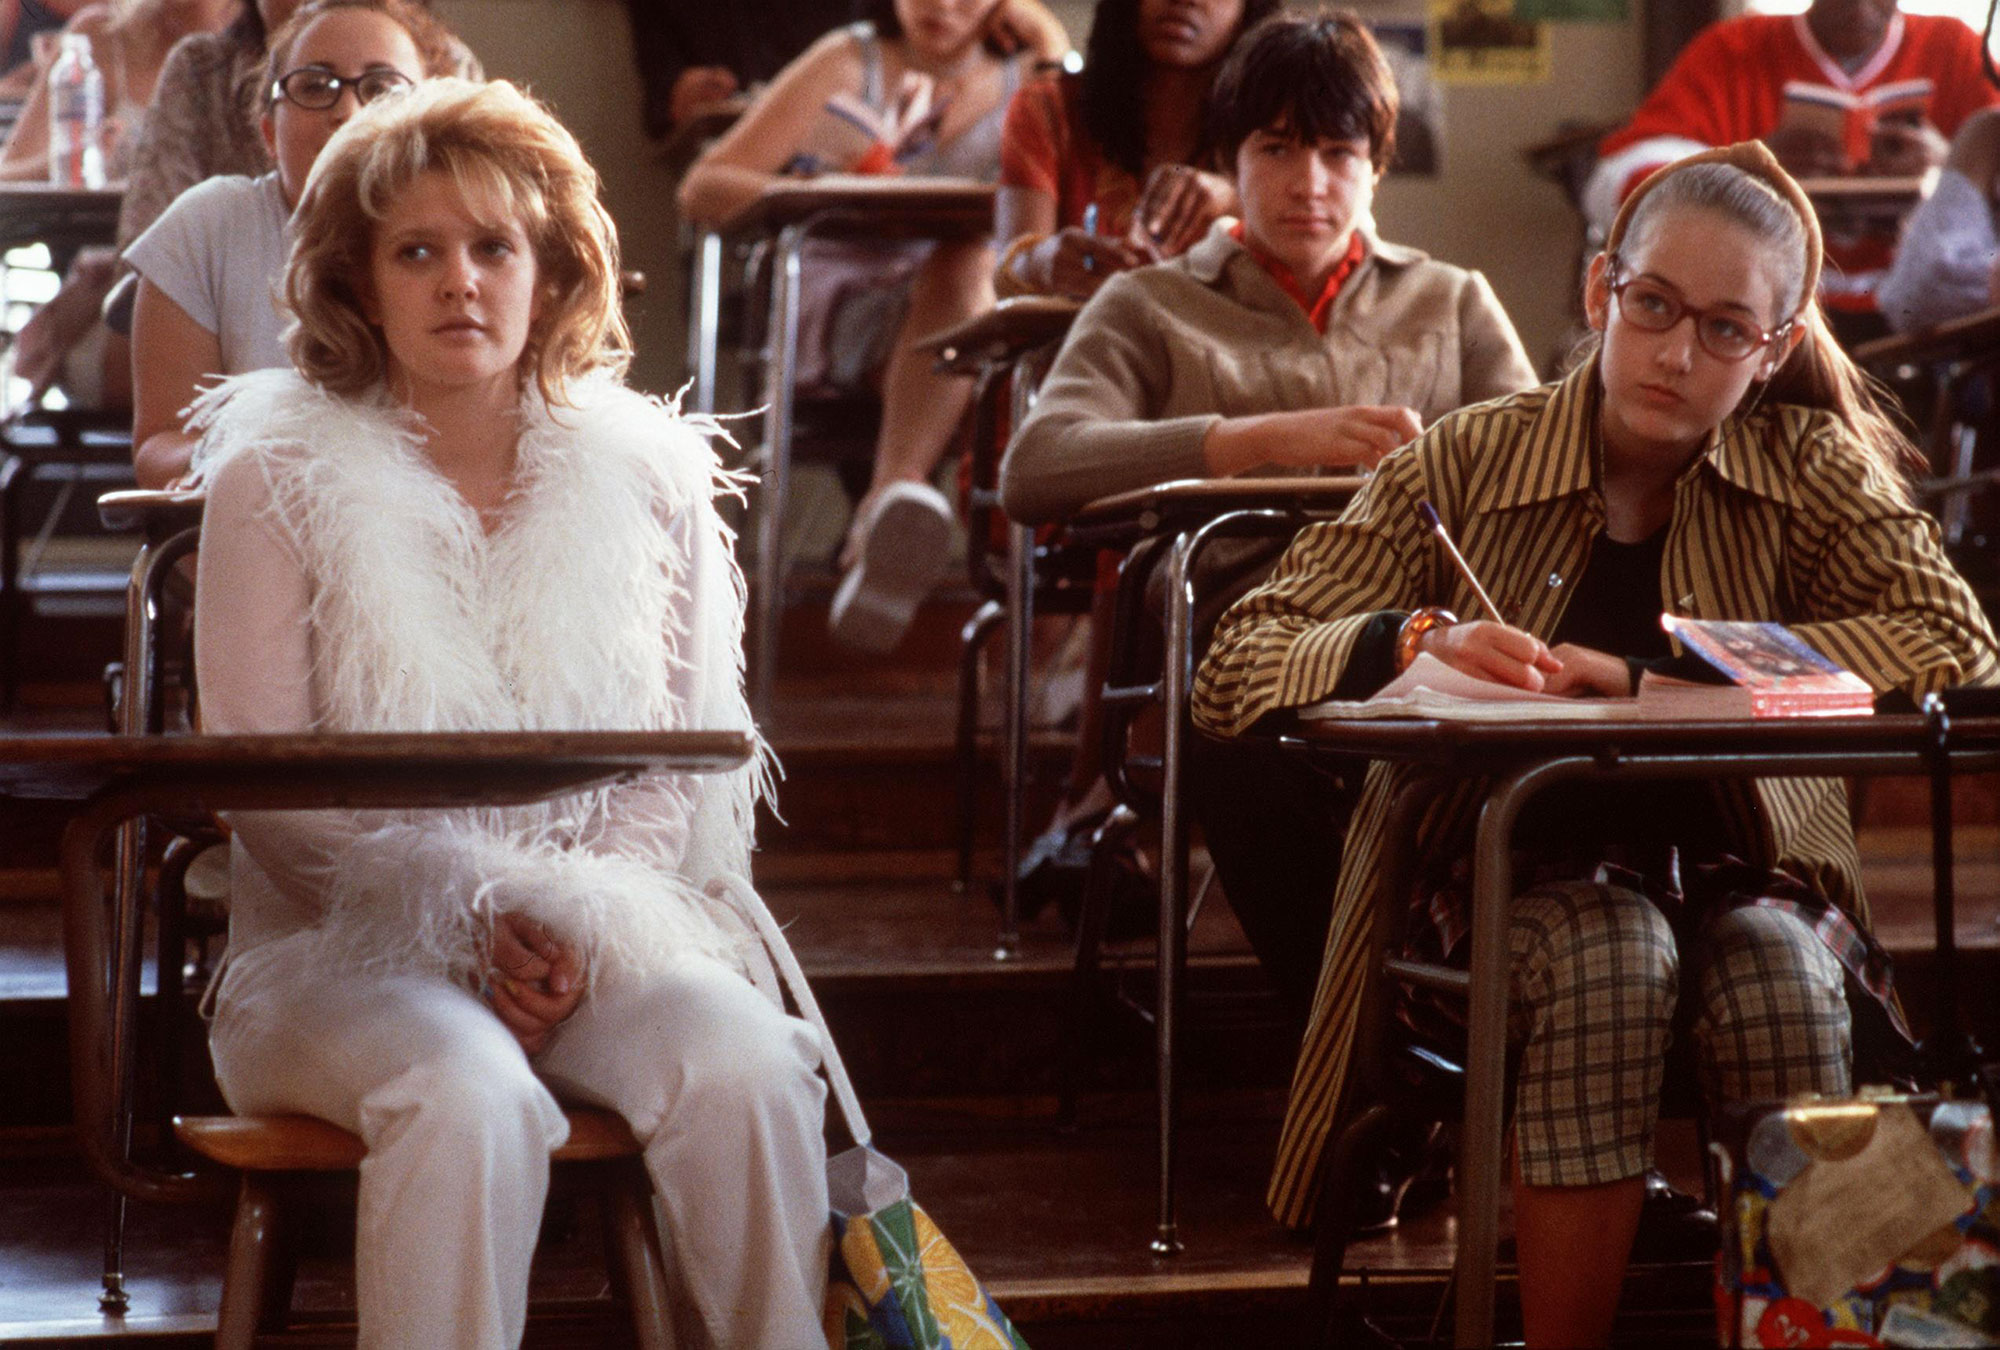 Relive the Best Quotes From 'Never Been Kissed' in Honor of the 20th Anniversary - Drew Barrymore stars in the movie 'Never Been Kissed.'